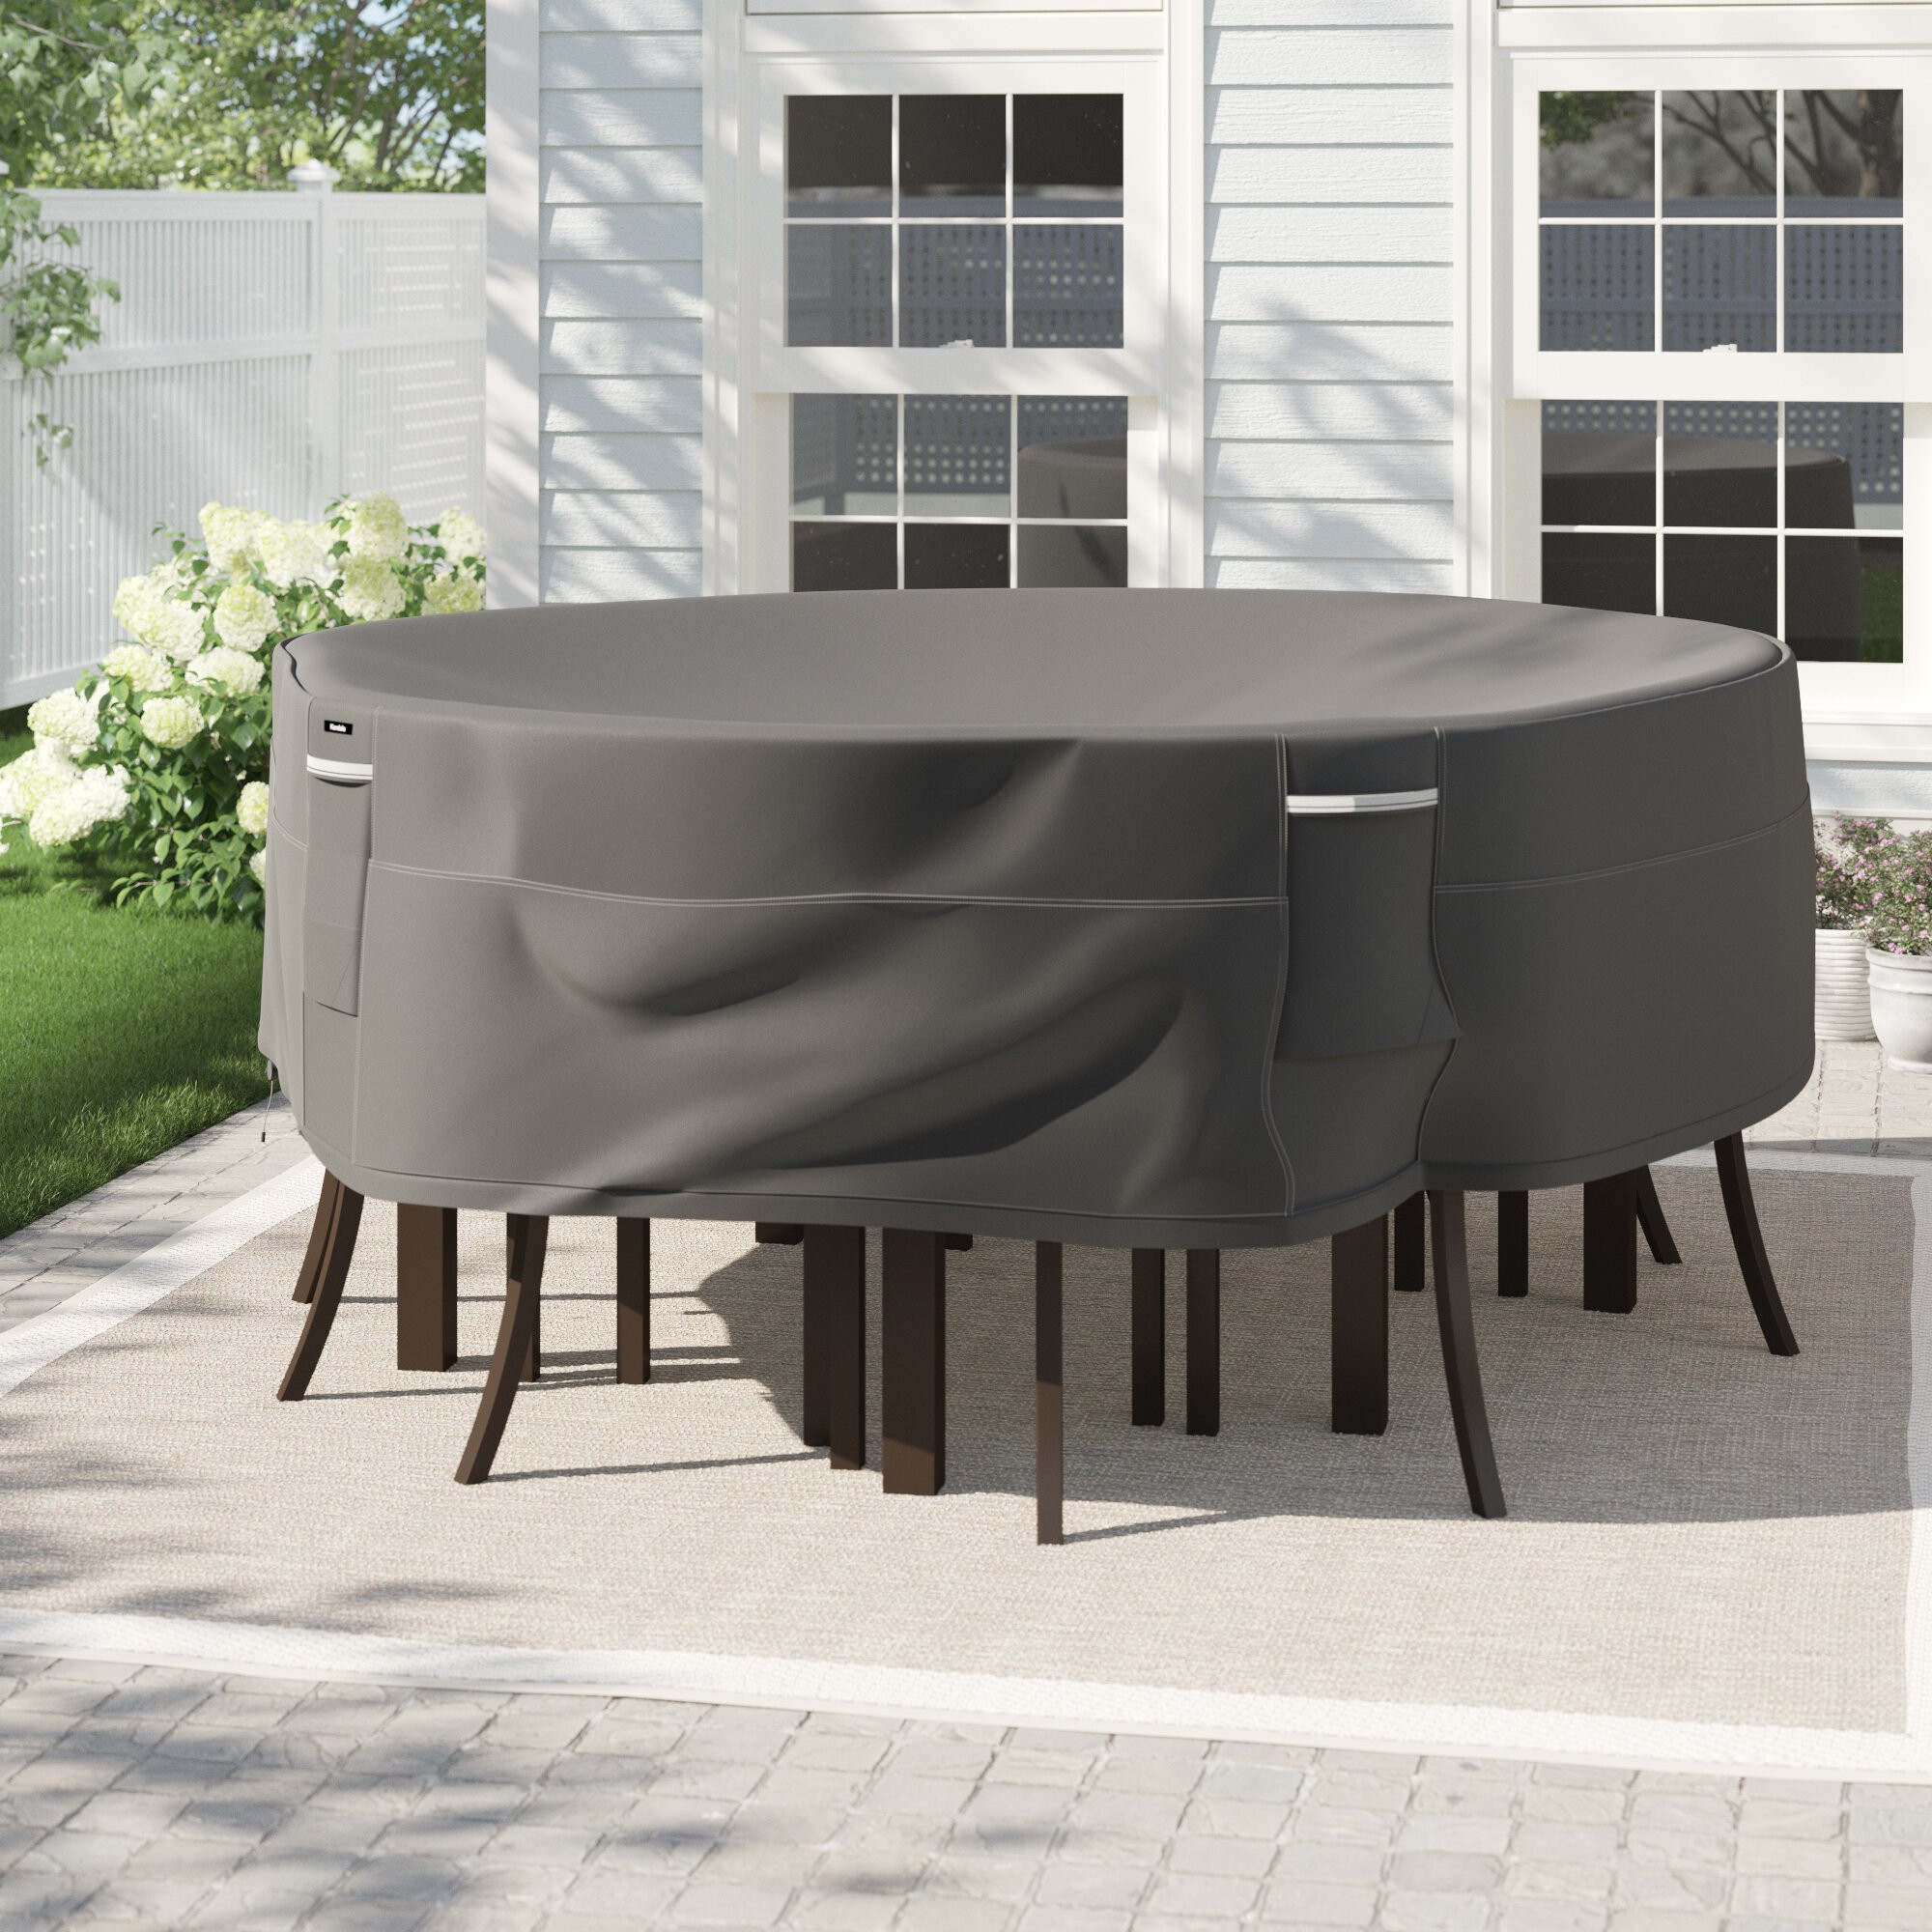 10 Best Patio Furniture Covers For 2021 Ideas On Foter